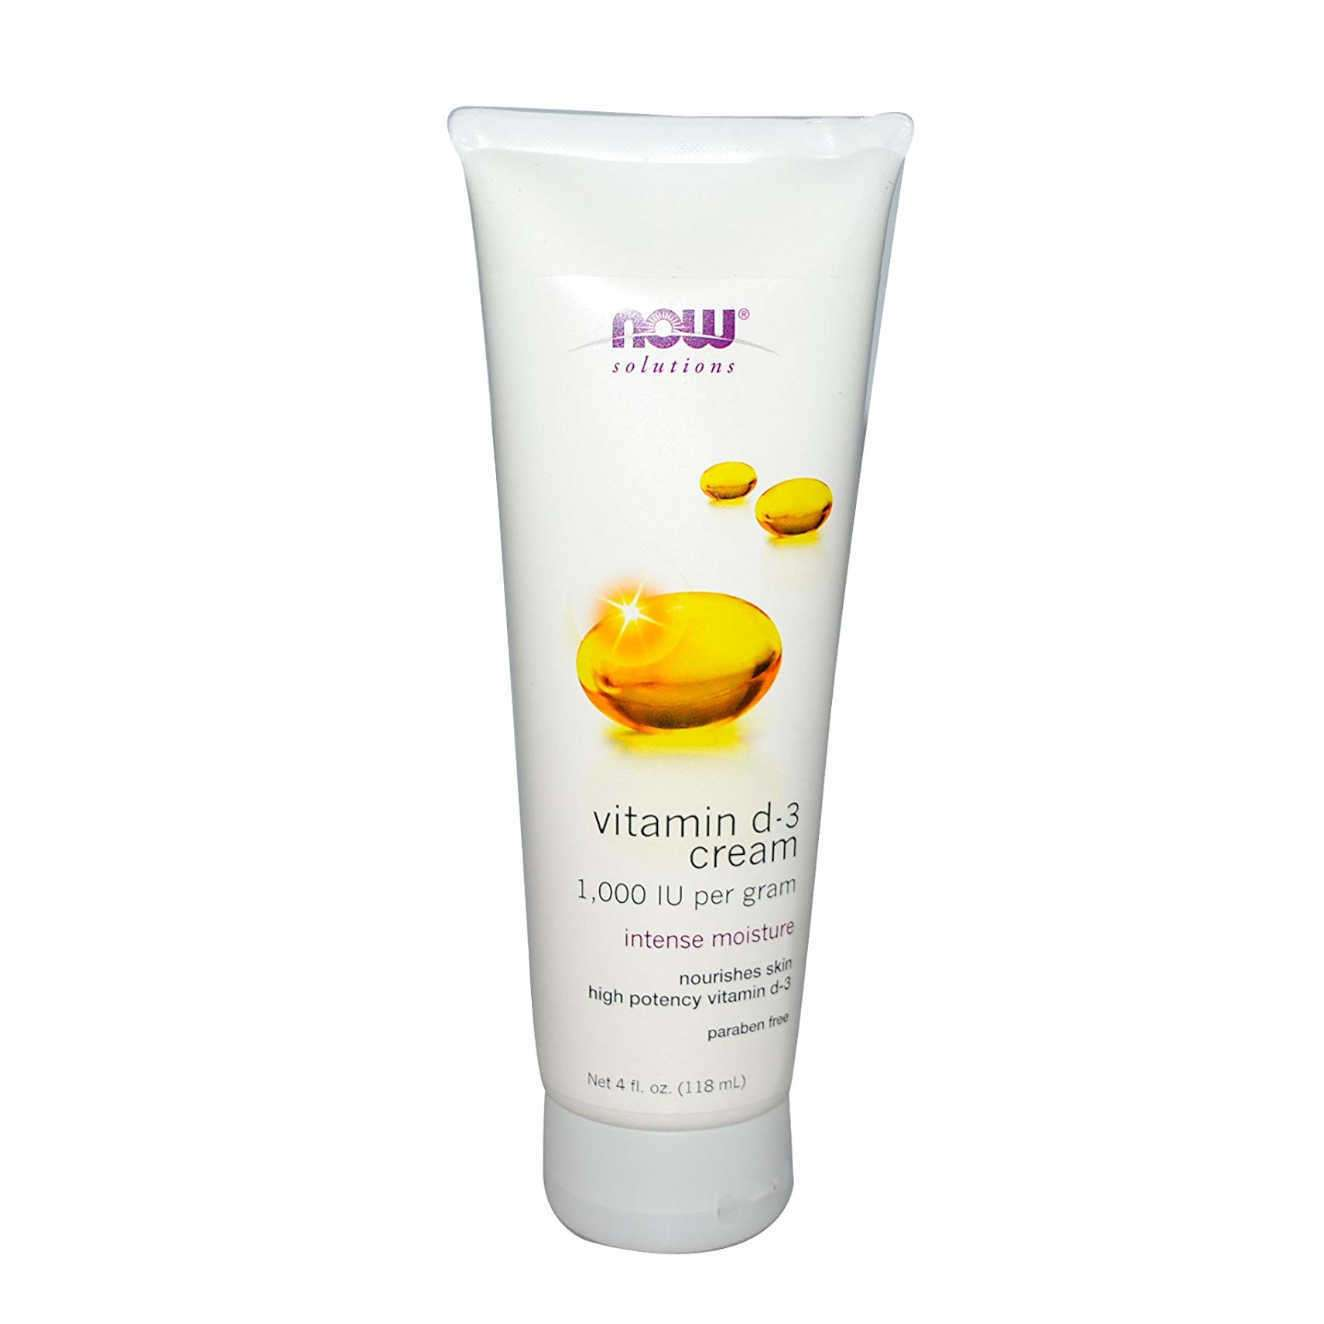 CREMA FACIAL DE VITAMINA D3 - 118ml